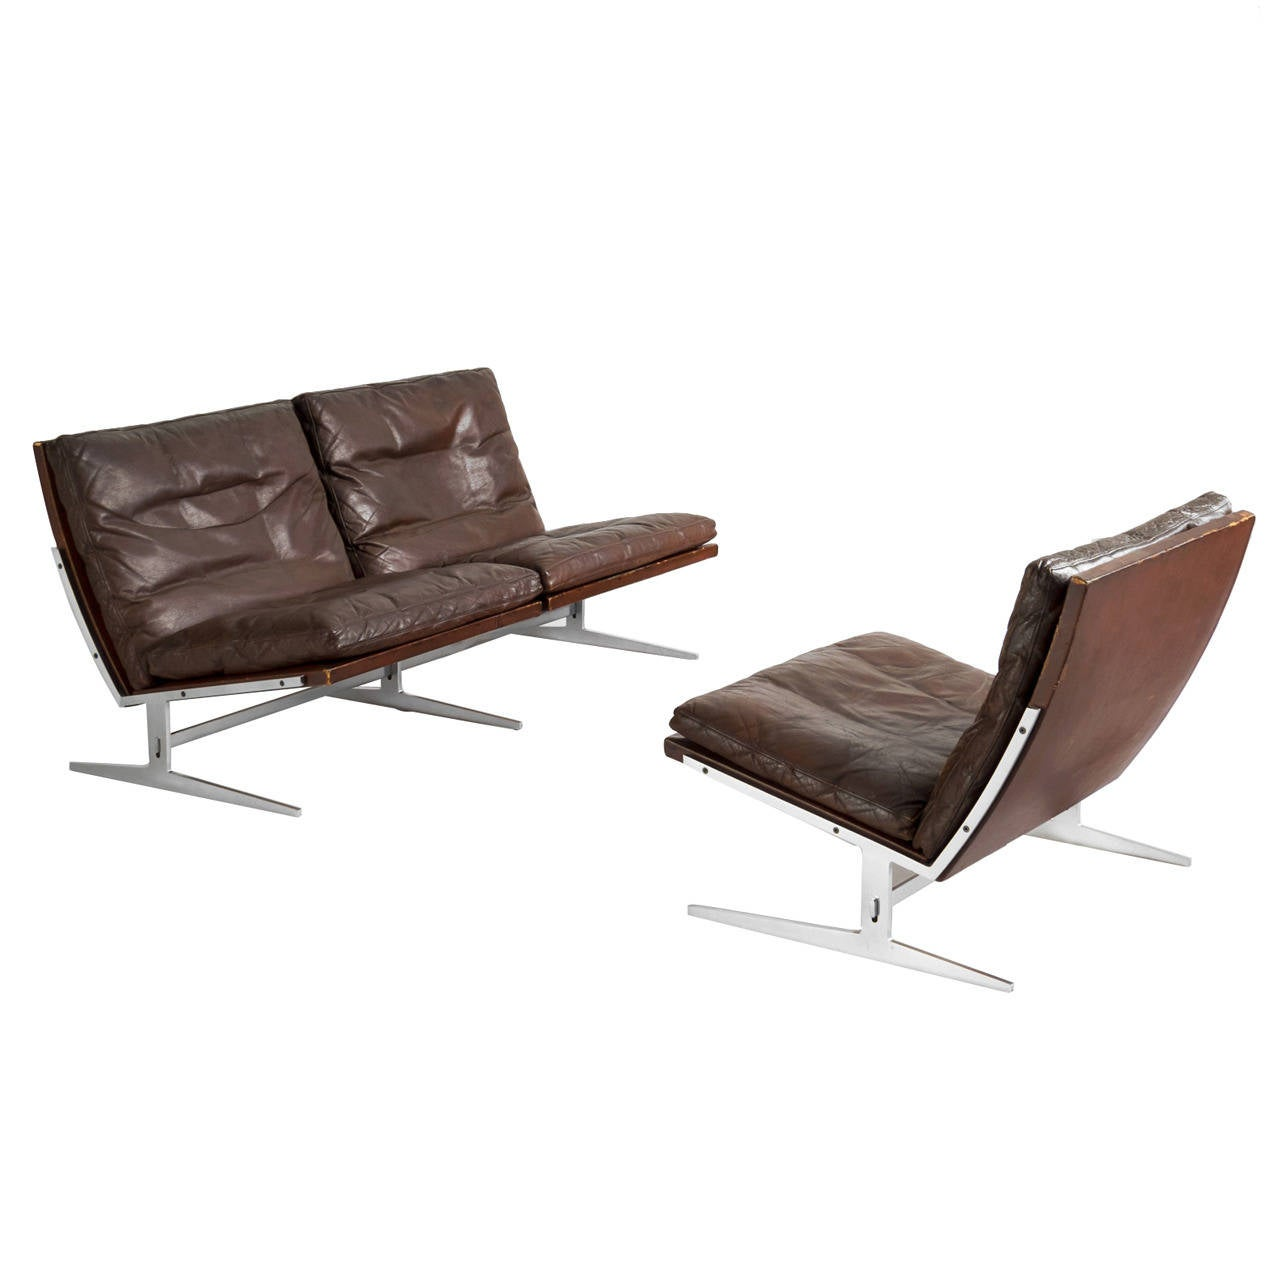 Twoseat Sofa And Lounge Chair Set By Fabricius And Kastholm 1